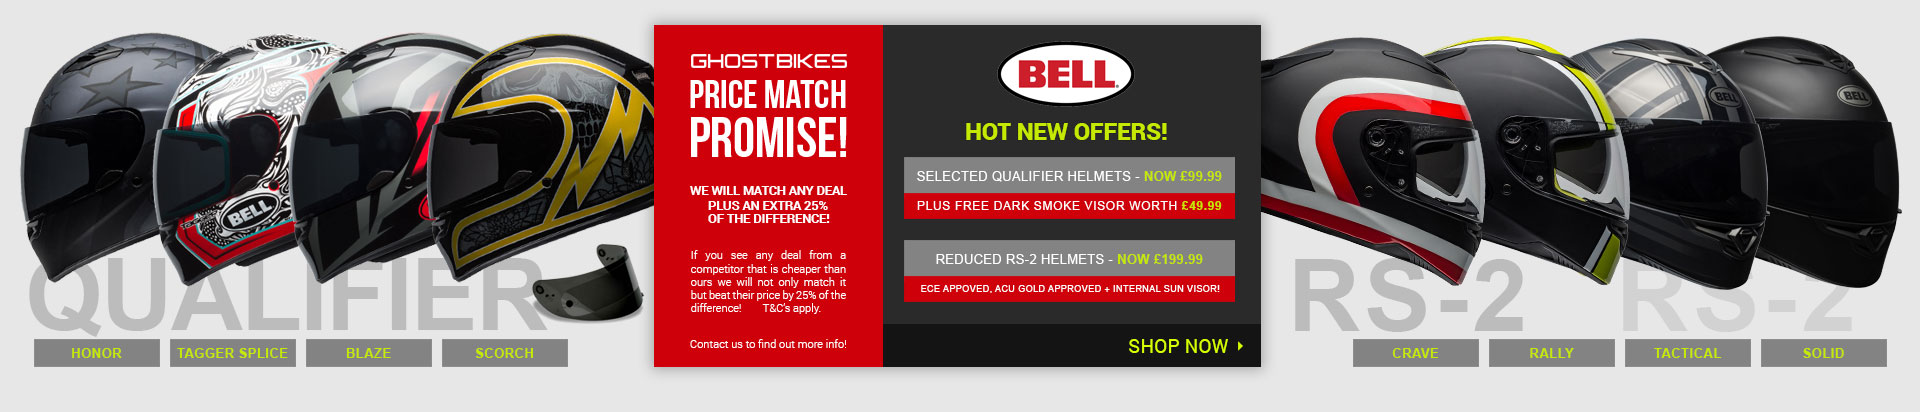 Bell Offers